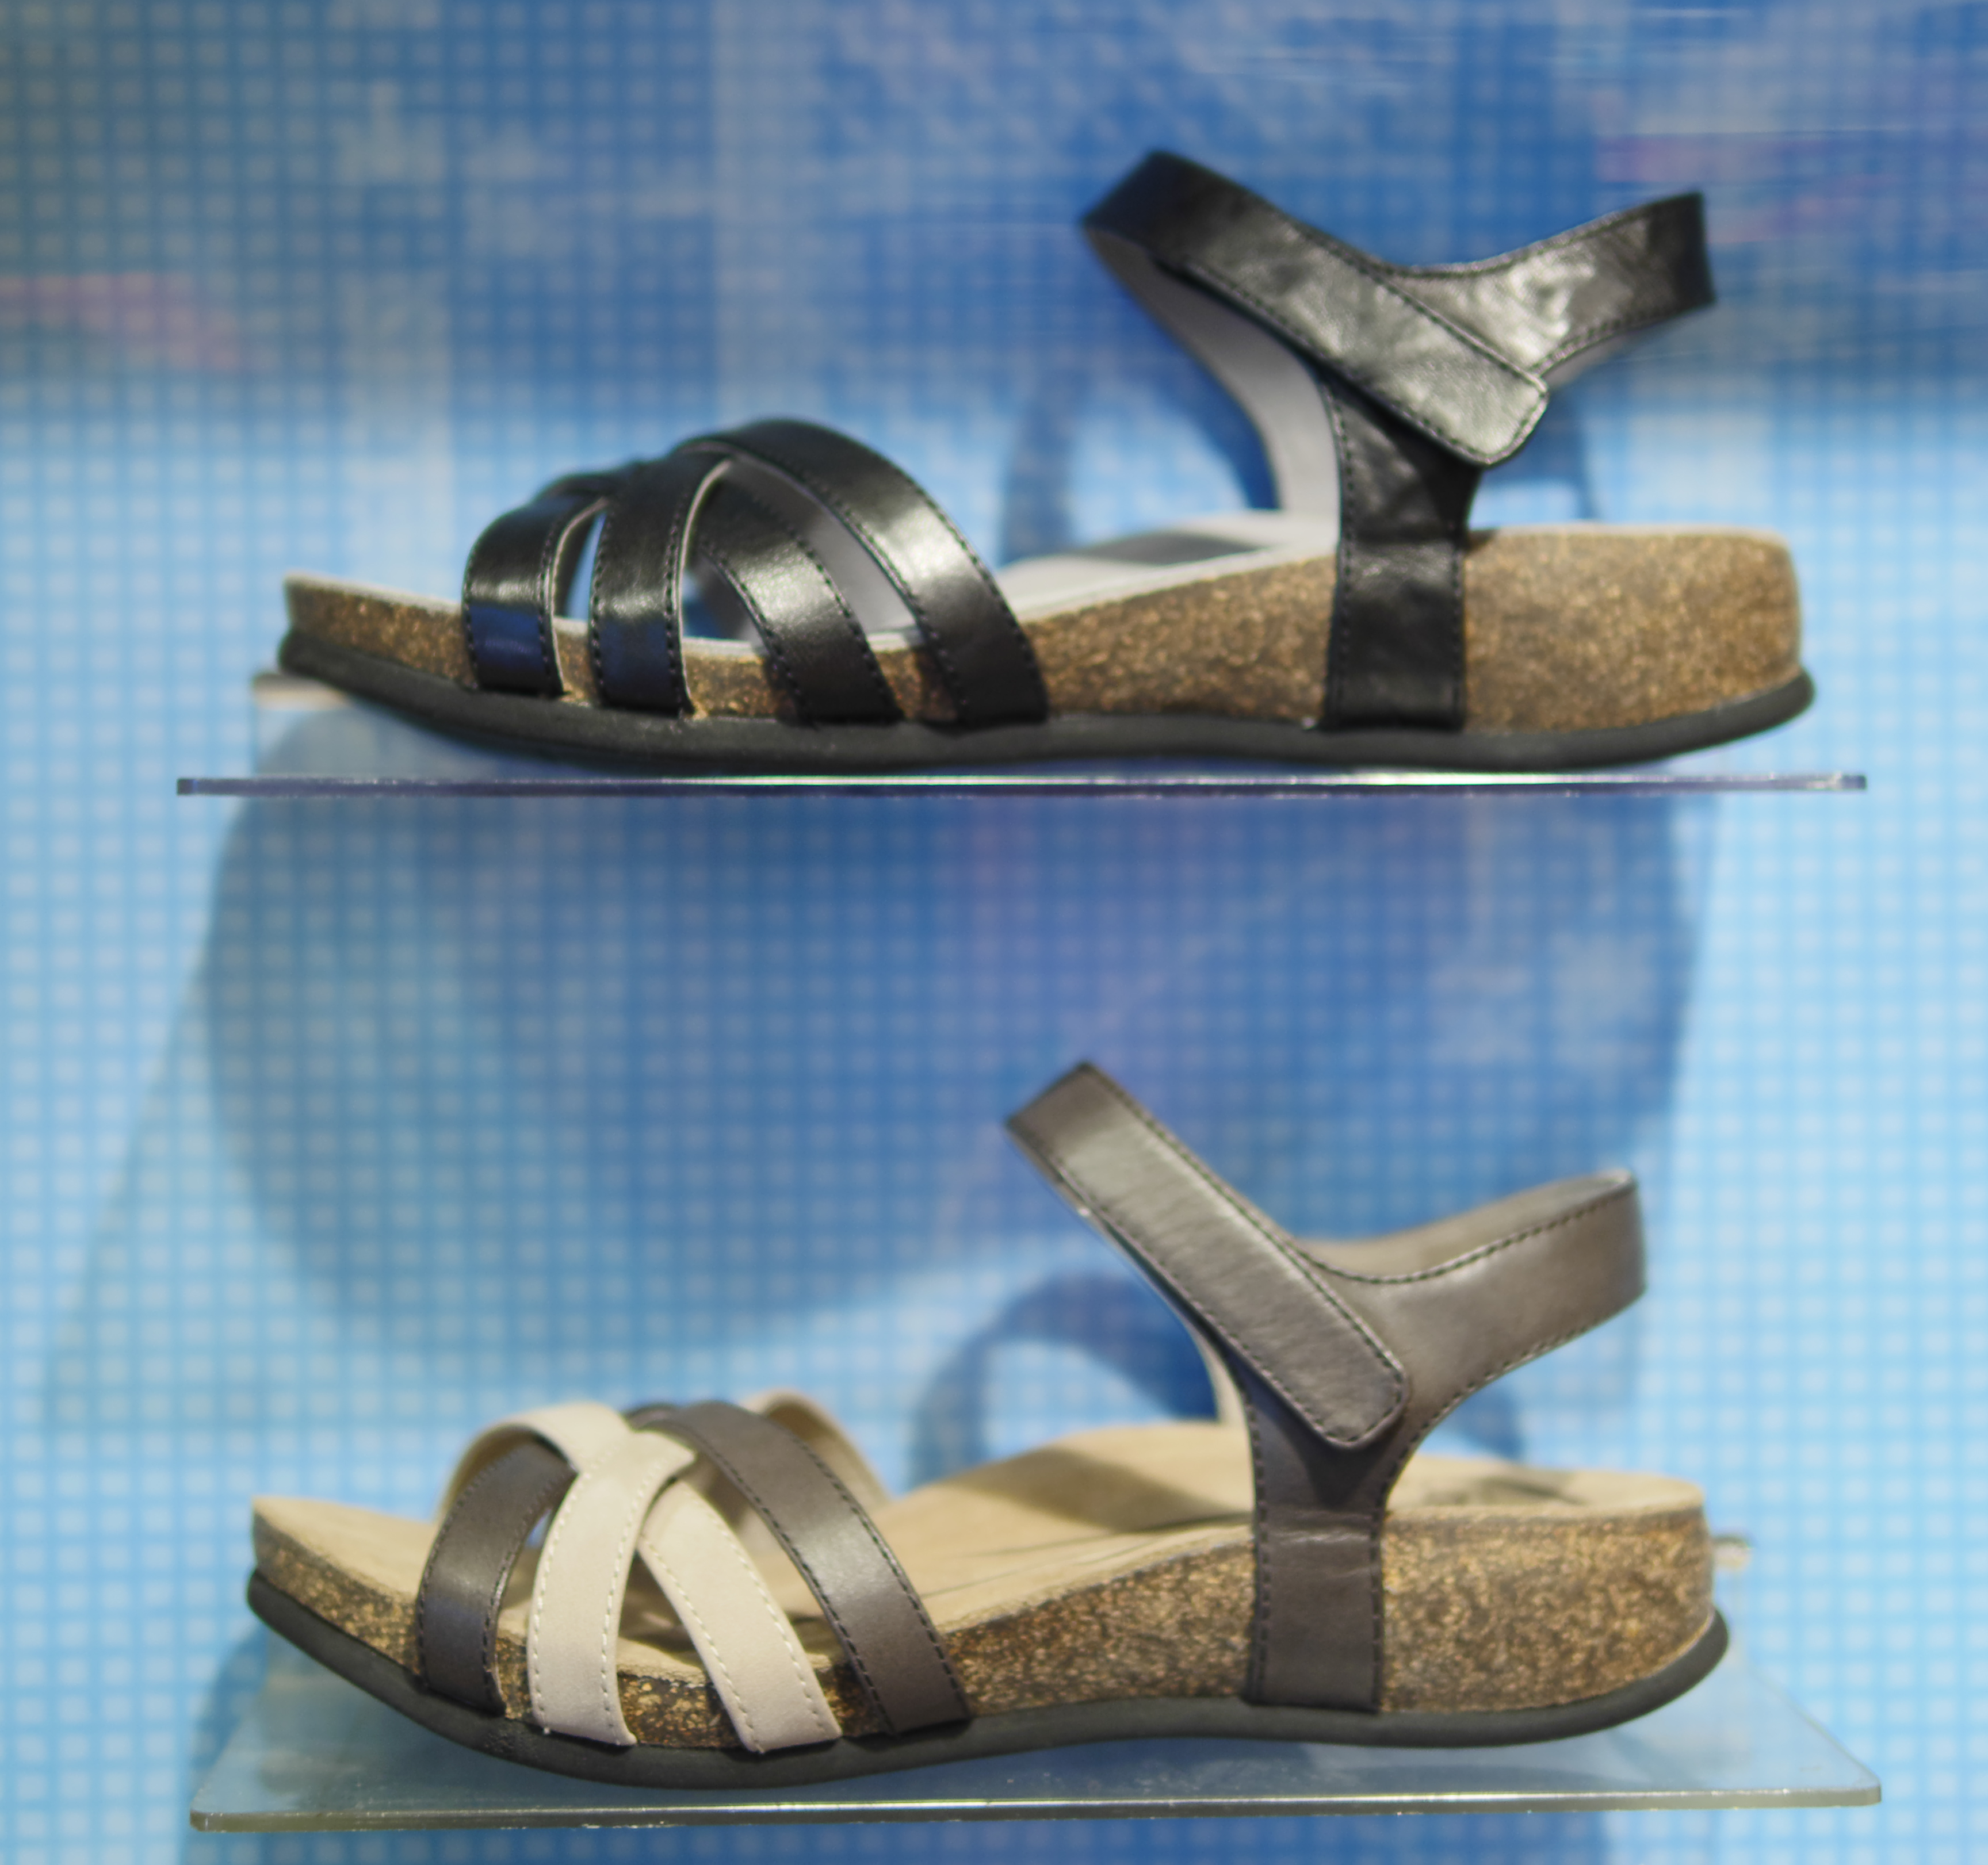 6b4f614ed5f The abeo bridgette sandals come in black and a neutral brown jpg 3456x3243 Abeo  shoes